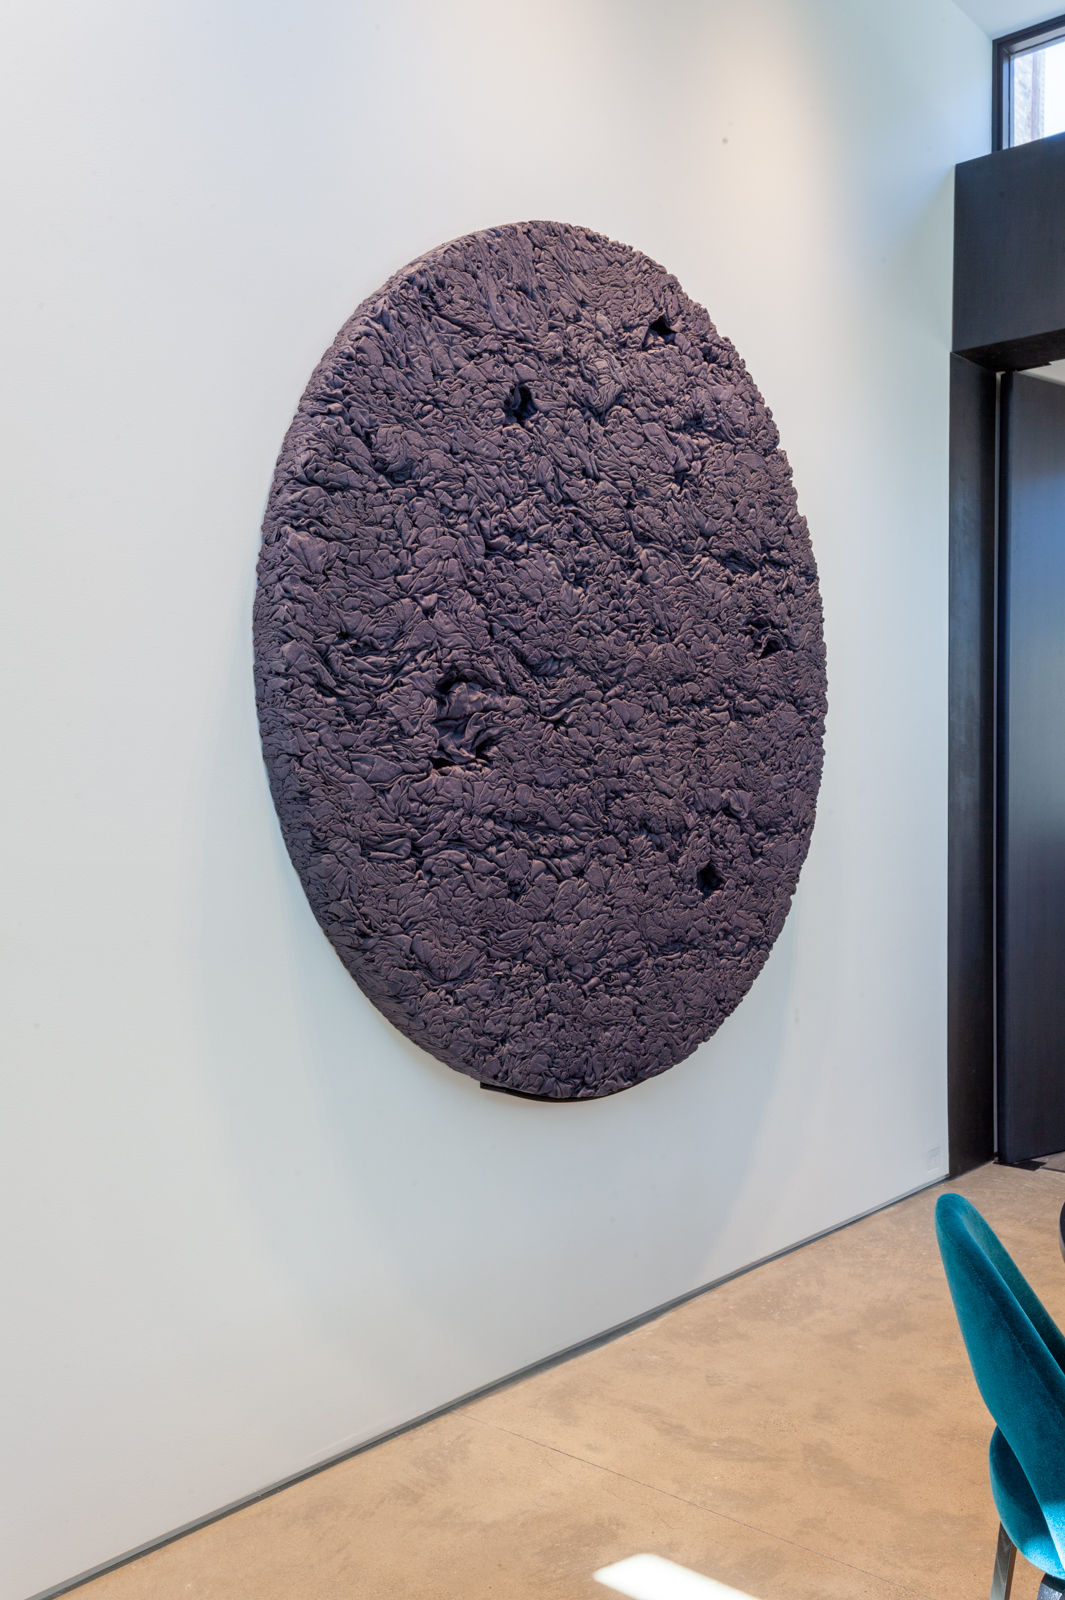 Manish Nai, Untitled, 2017, in the Gupta Moss collection, Chicago.